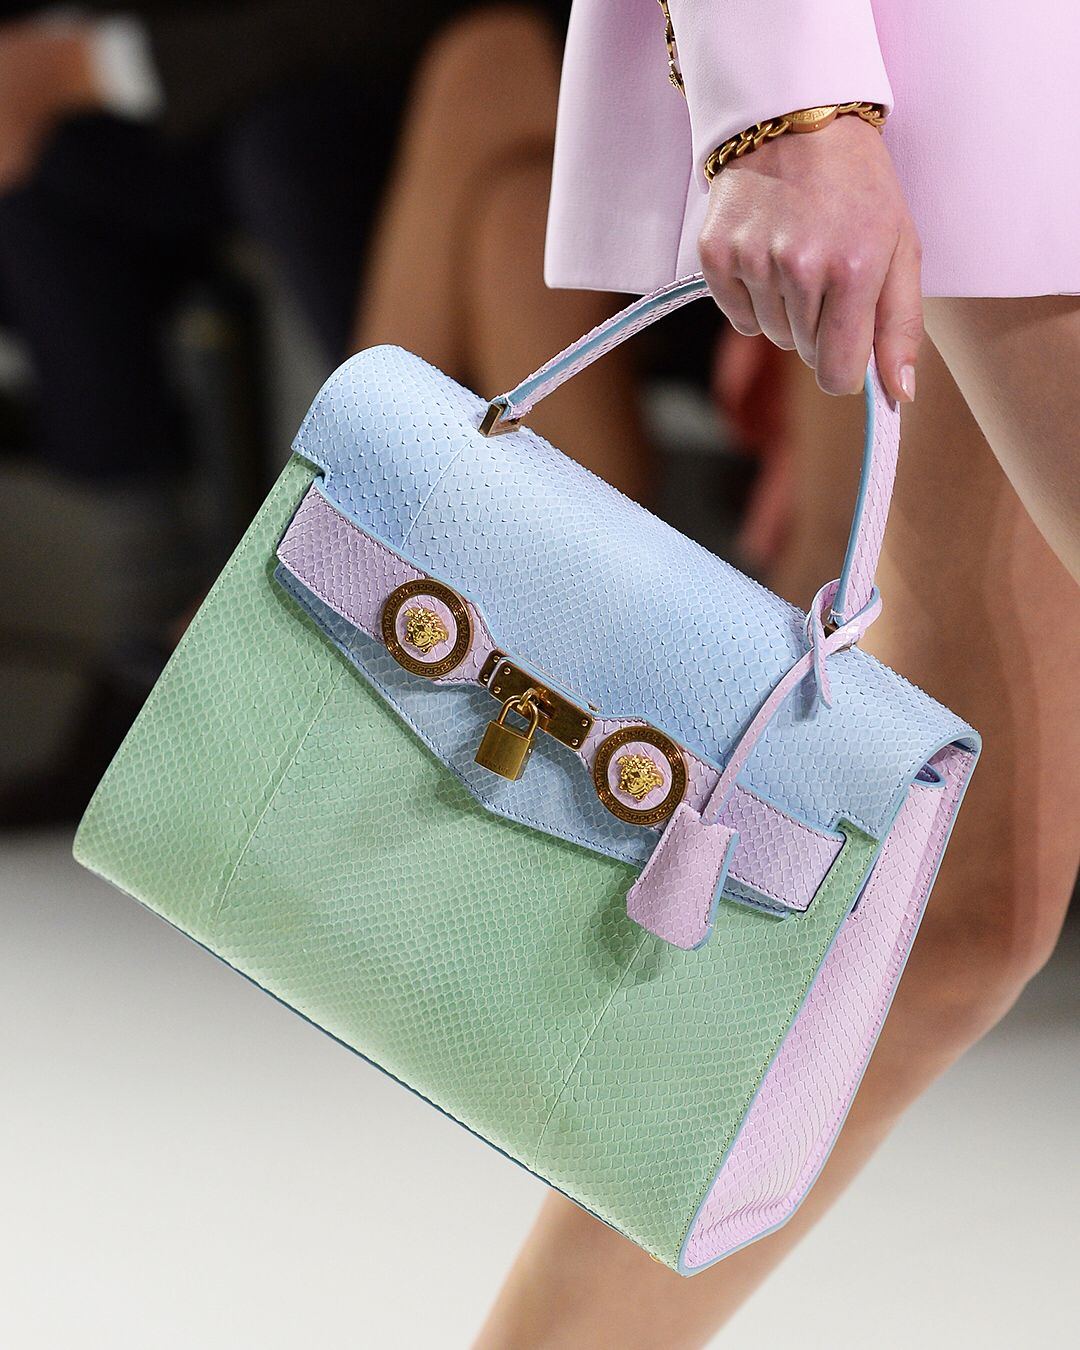 Pastel colored bags